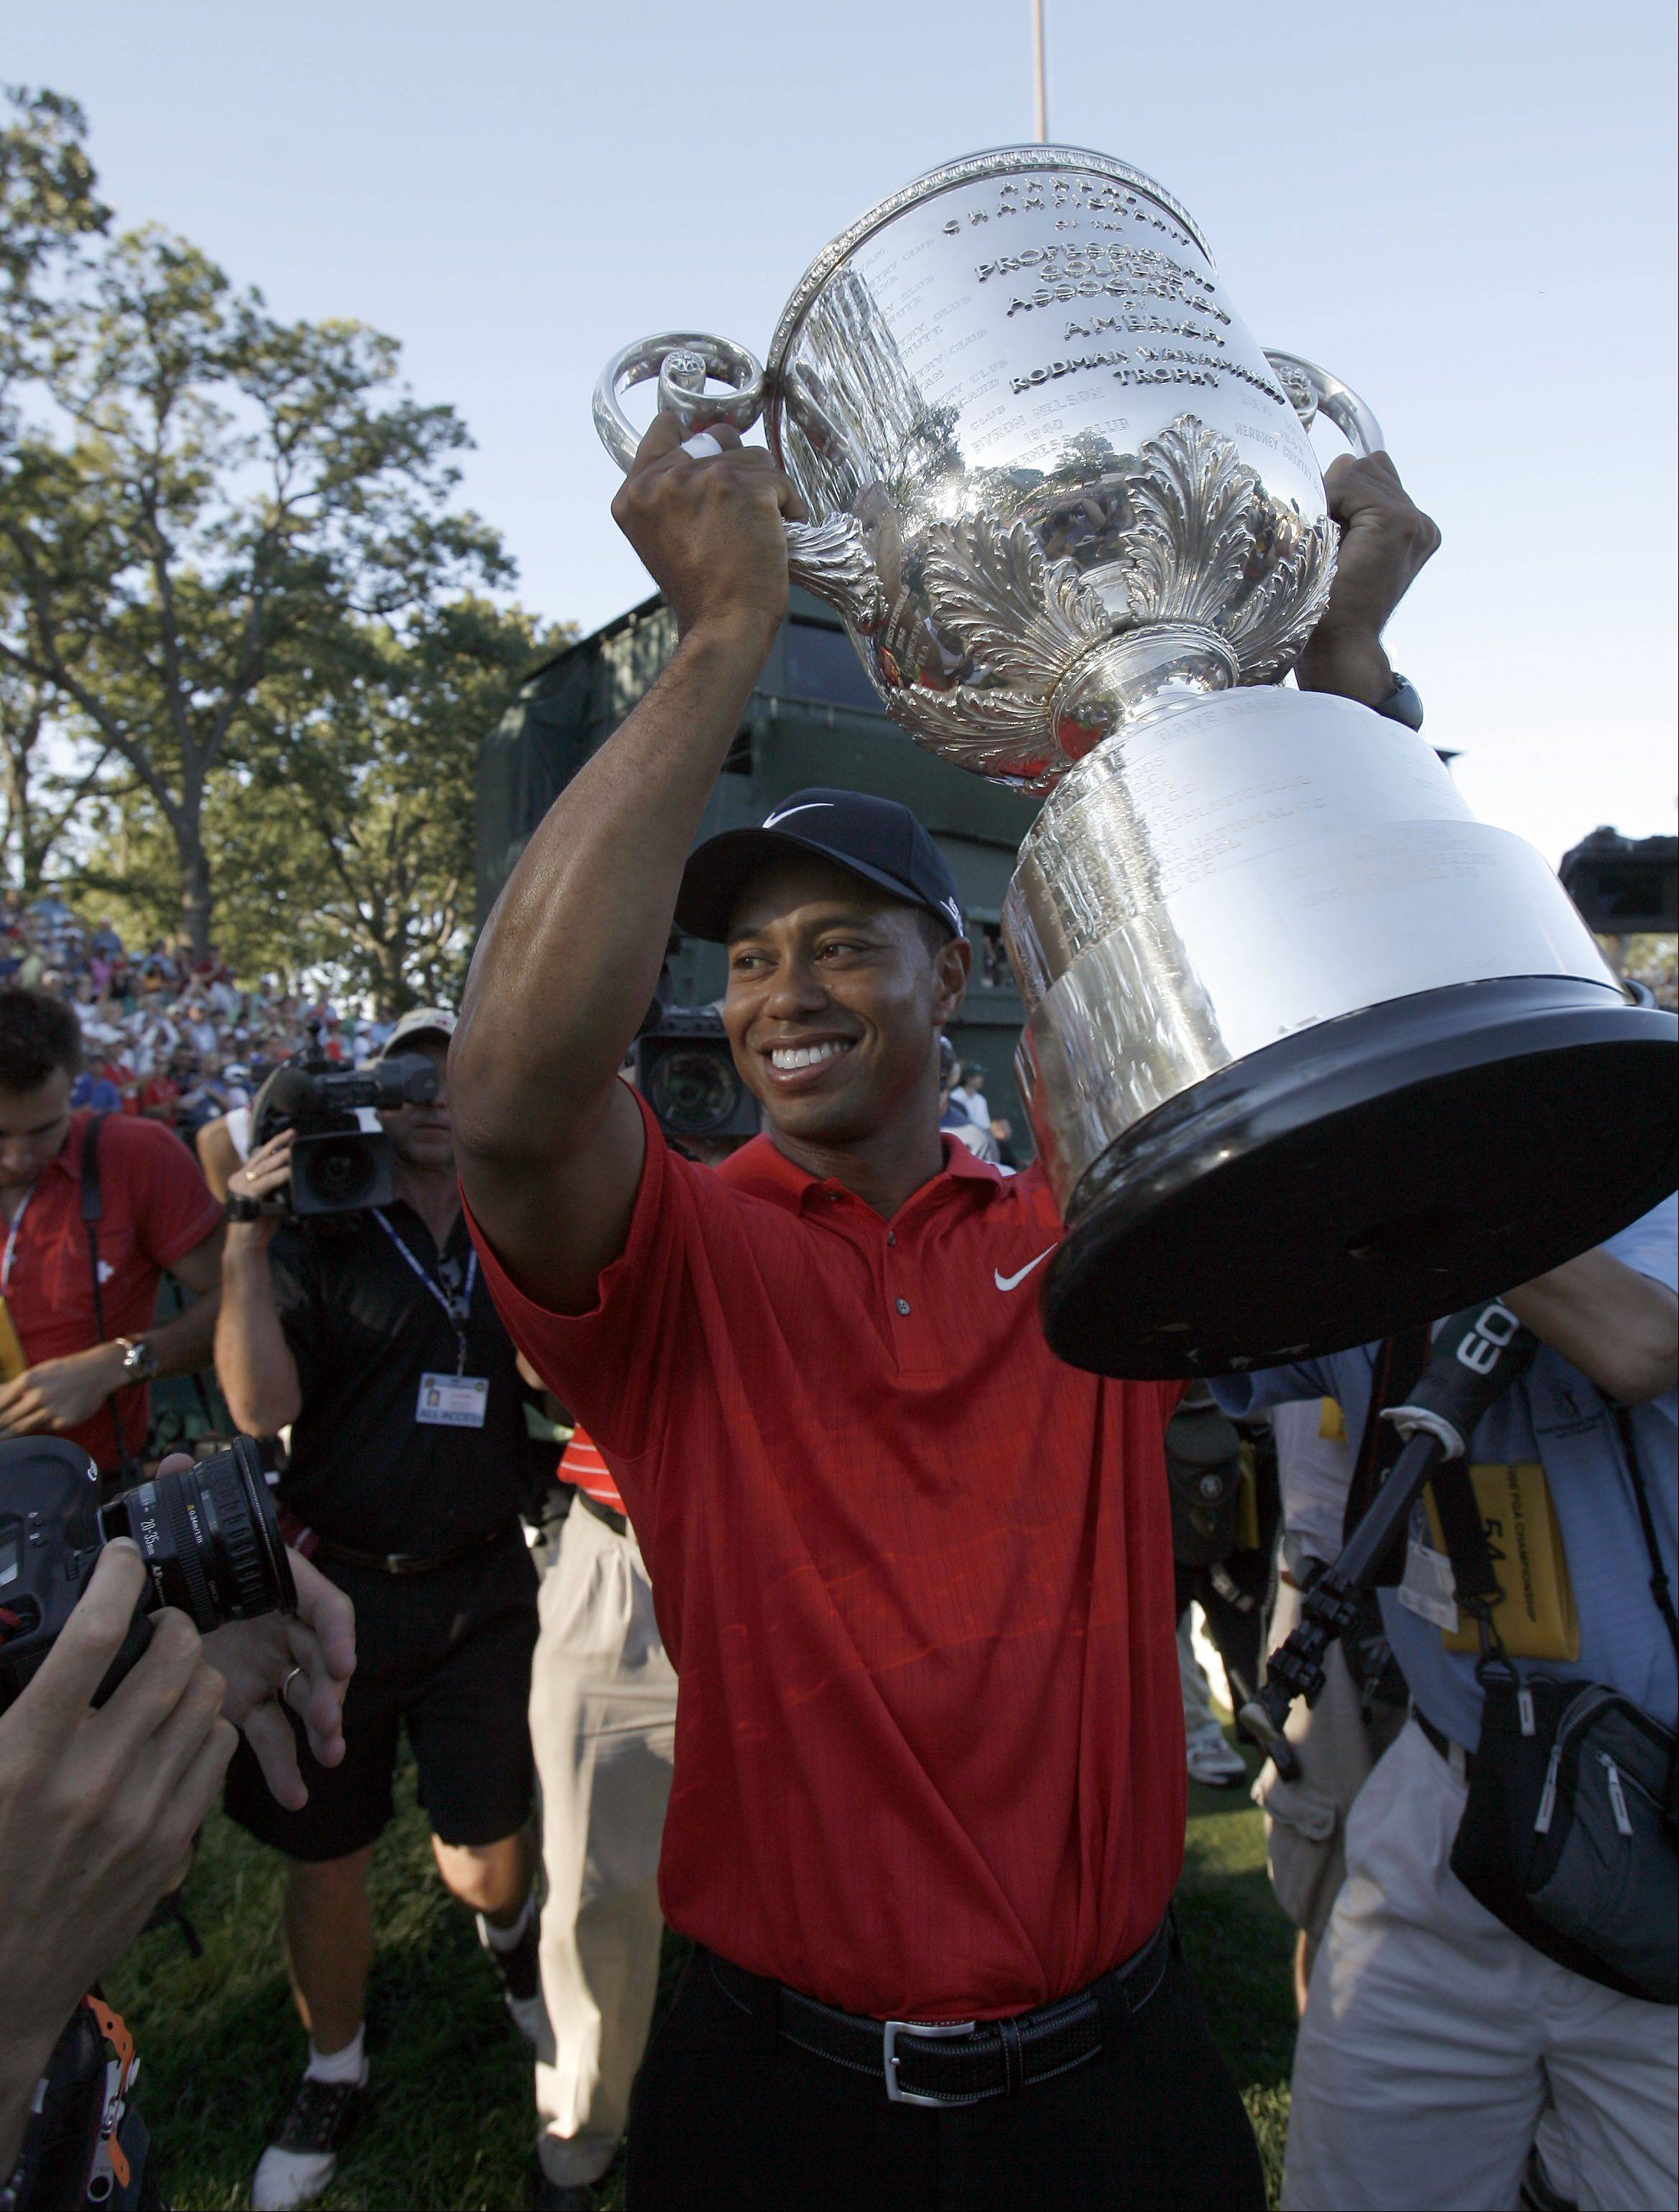 Round four of the 88th PGA Championship Sunday, August 20, 2006 at Medinah Country Club in Medinah. Tiger lifts the trophy.